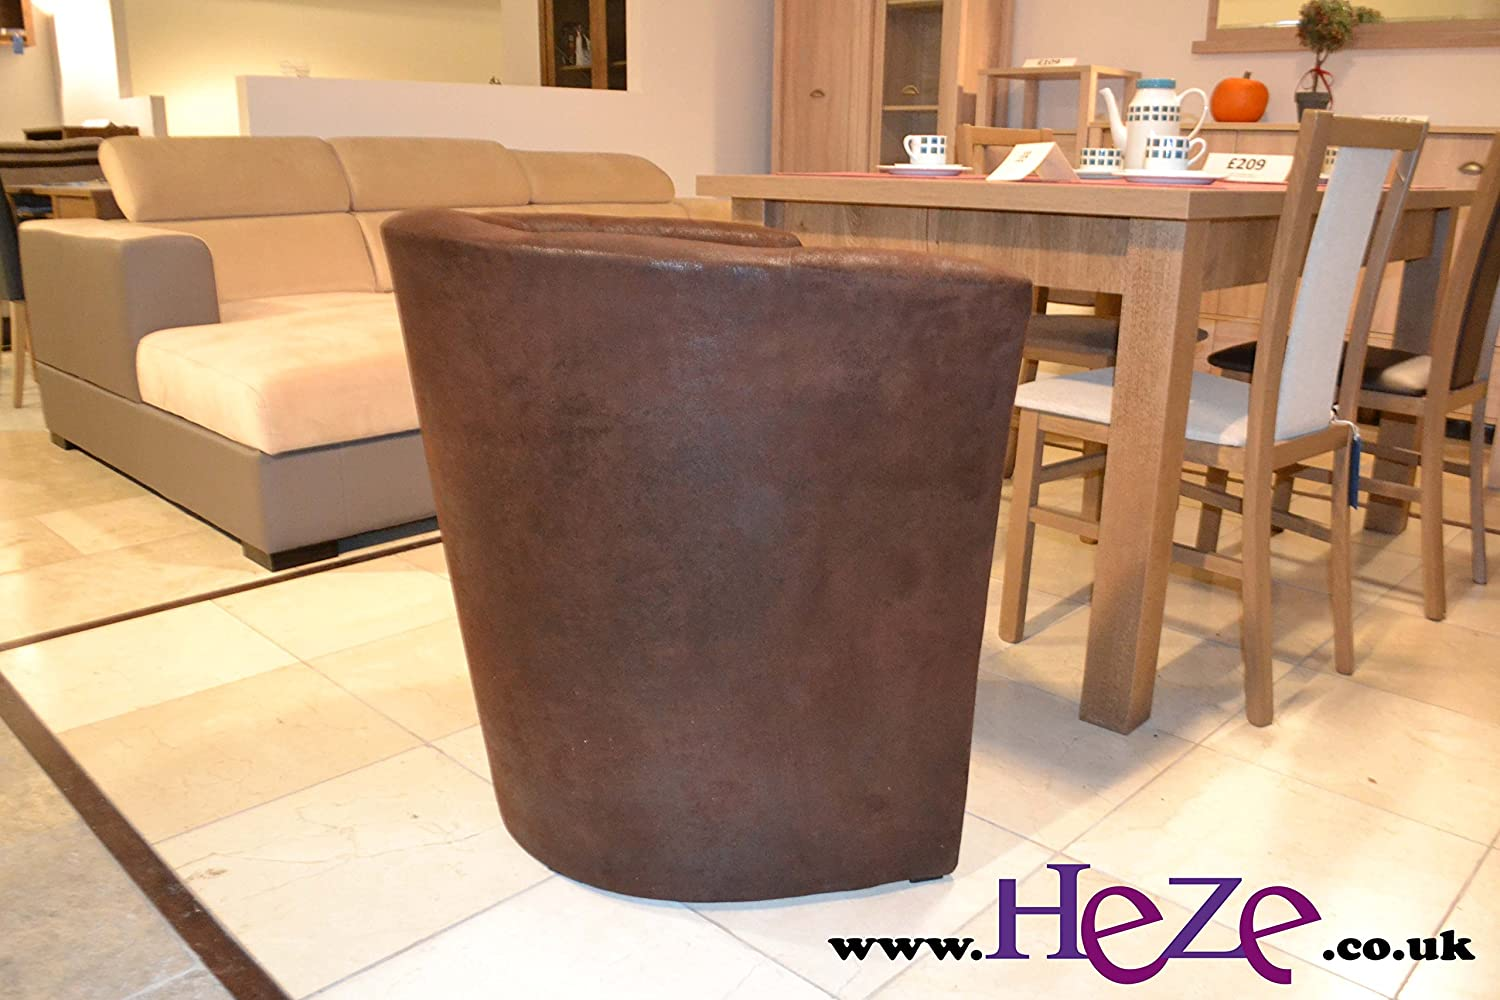 Heze Ltd Stylish and elegant tub chair York lovely vintage style PlayStation chair